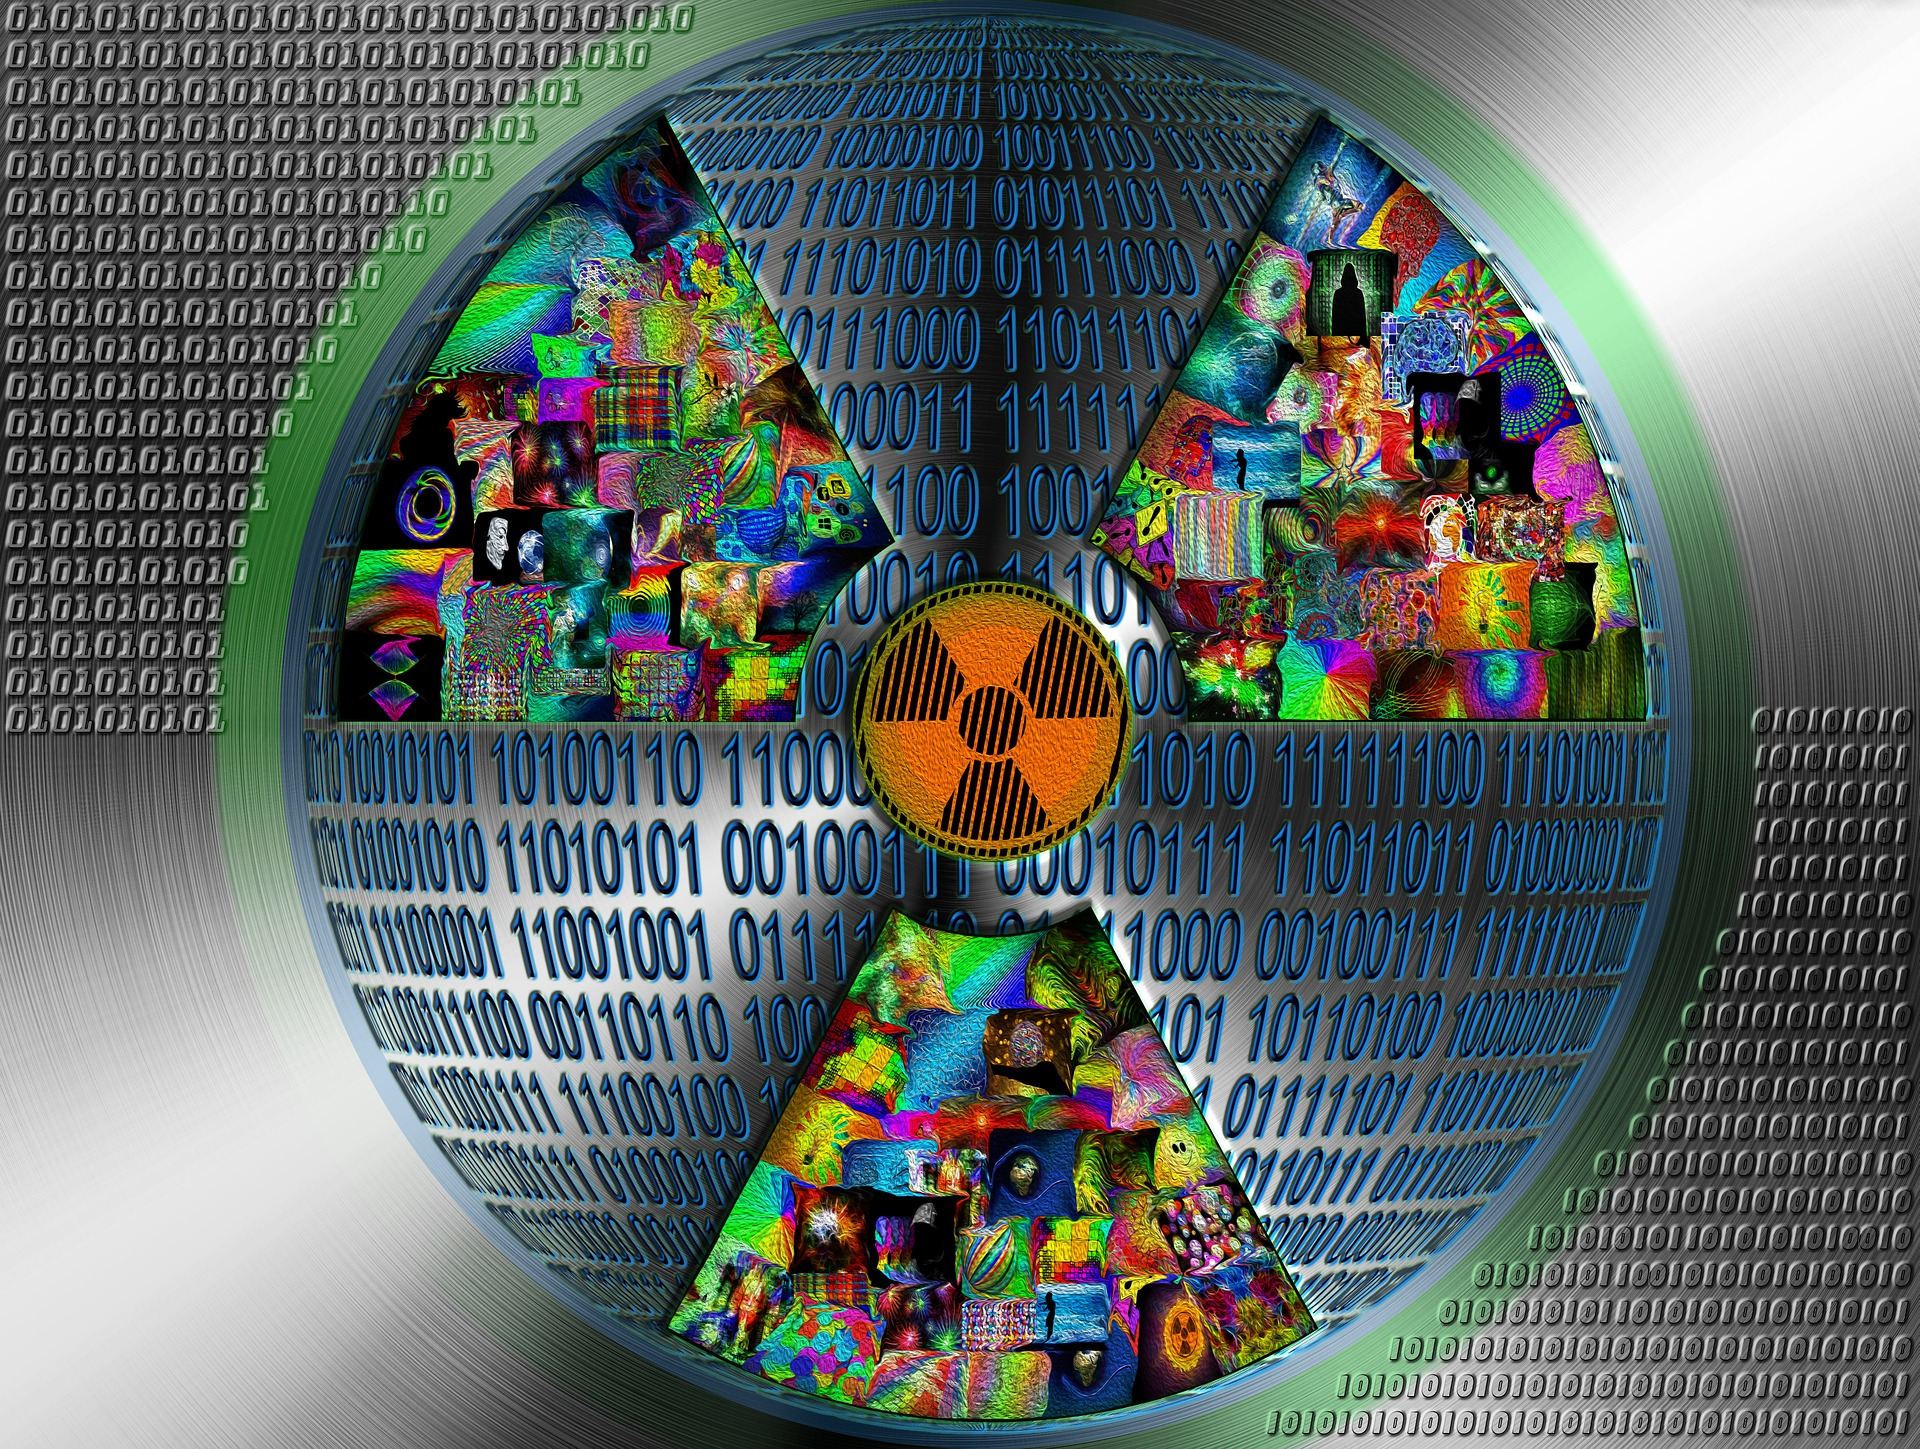 Nuclear symbol with binary code and random images